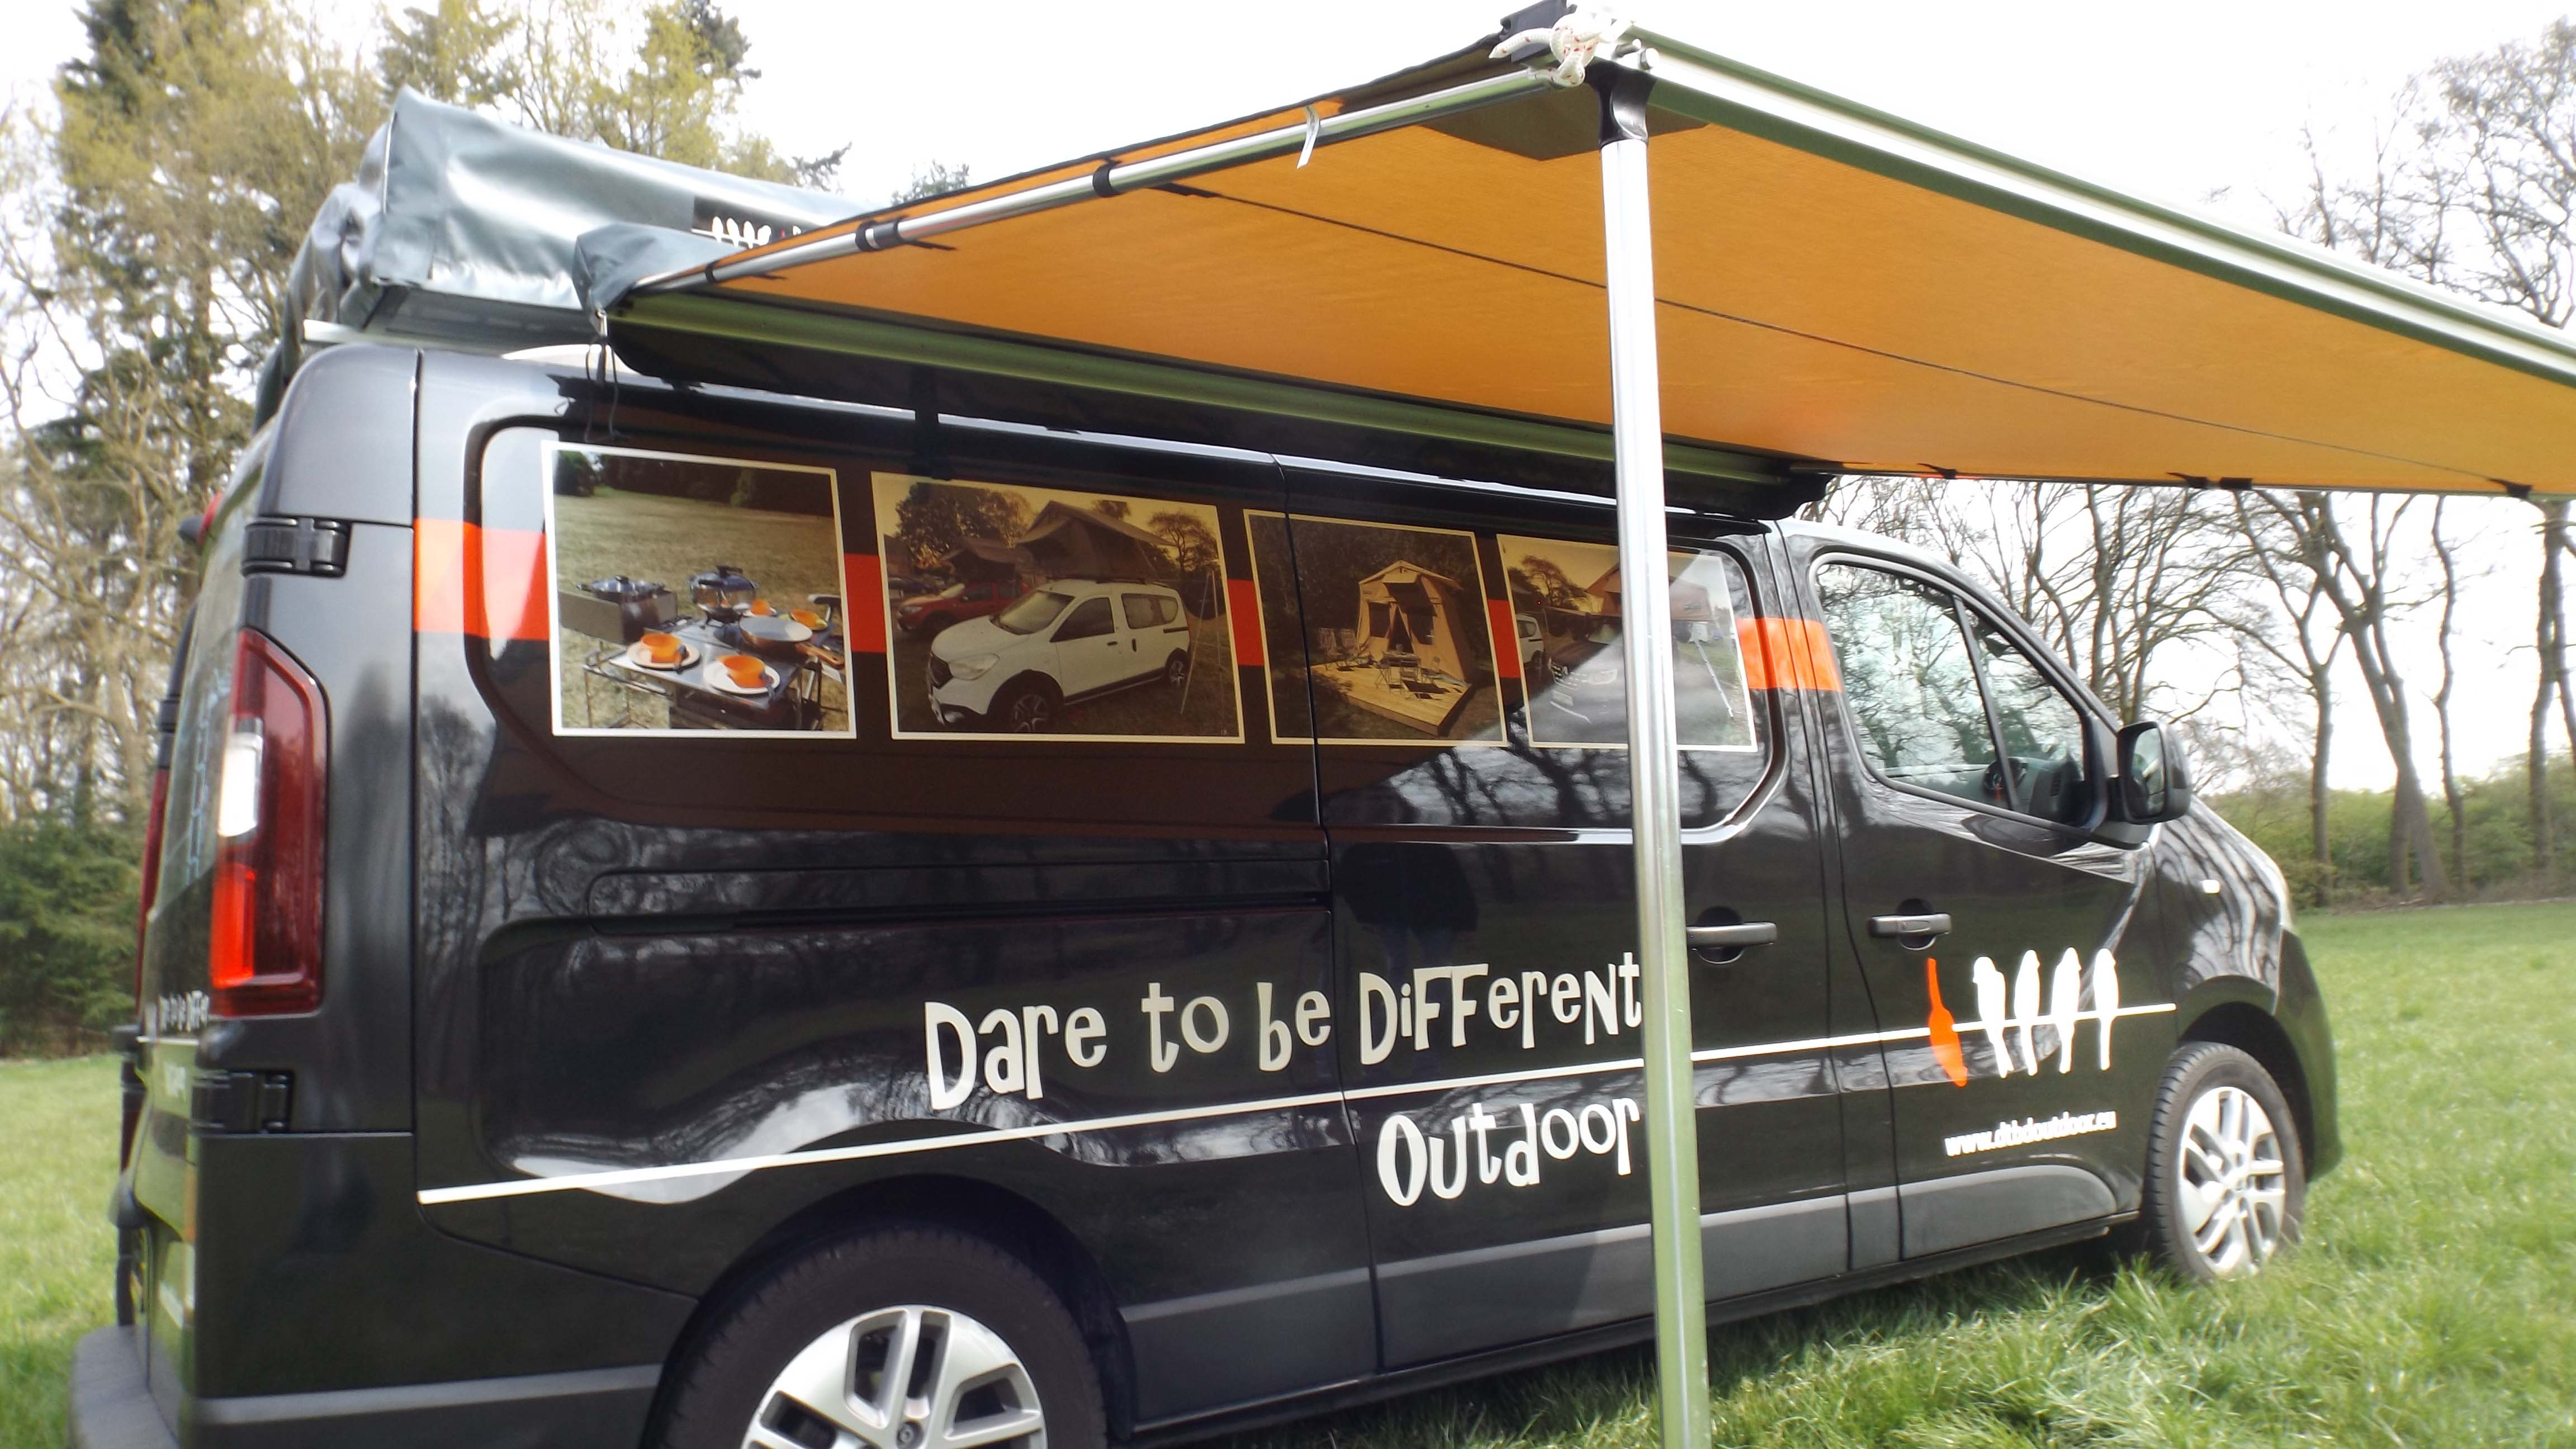 DTBD Outdoor Quad Luifel awning markiese 201904173